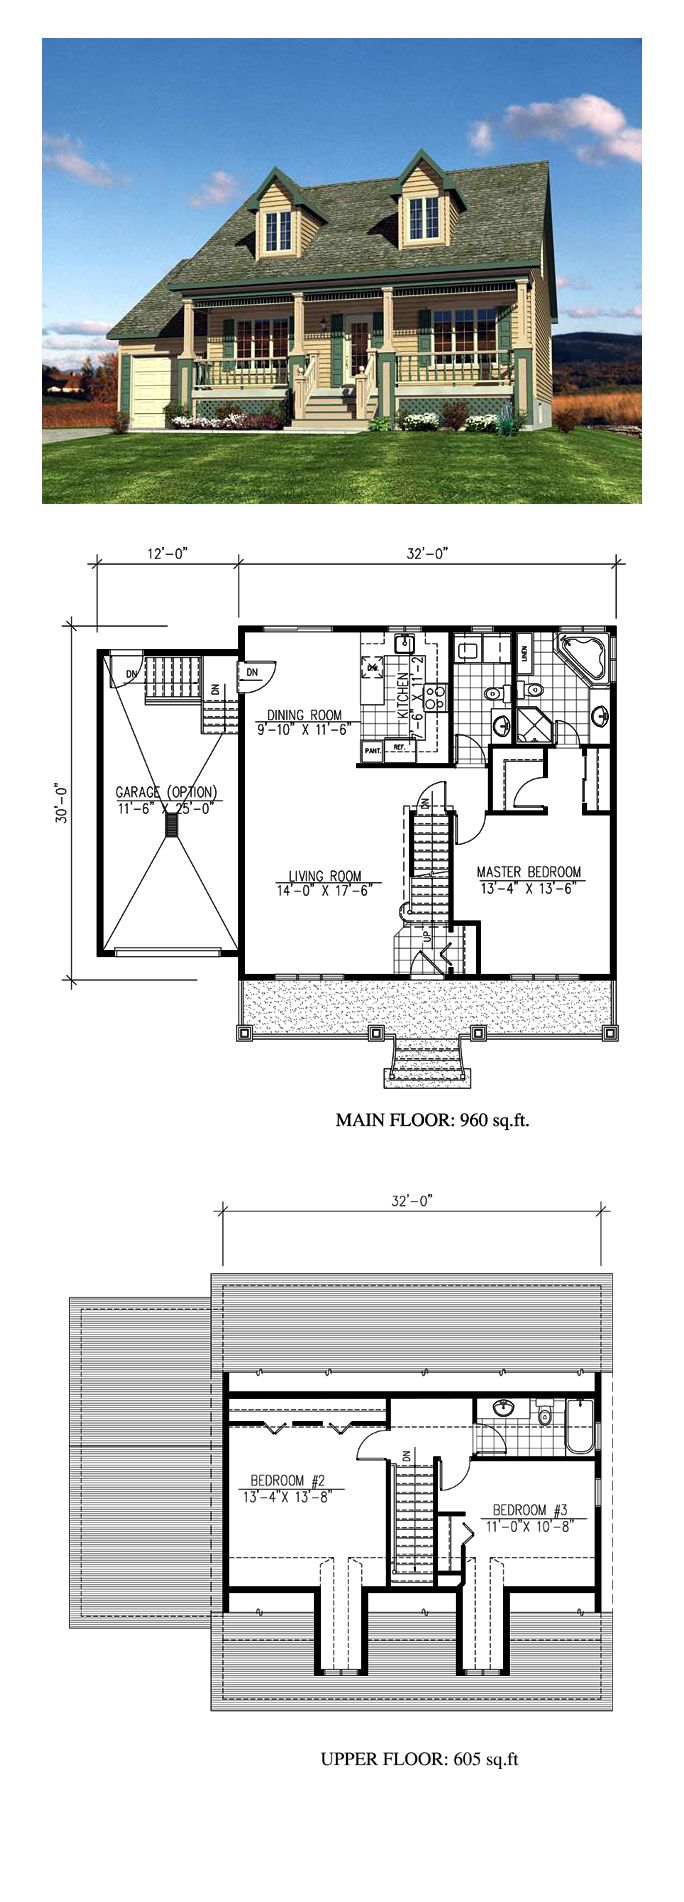 8 x 4 badezimmer designs  best tiny plans images on pinterest  small house plans